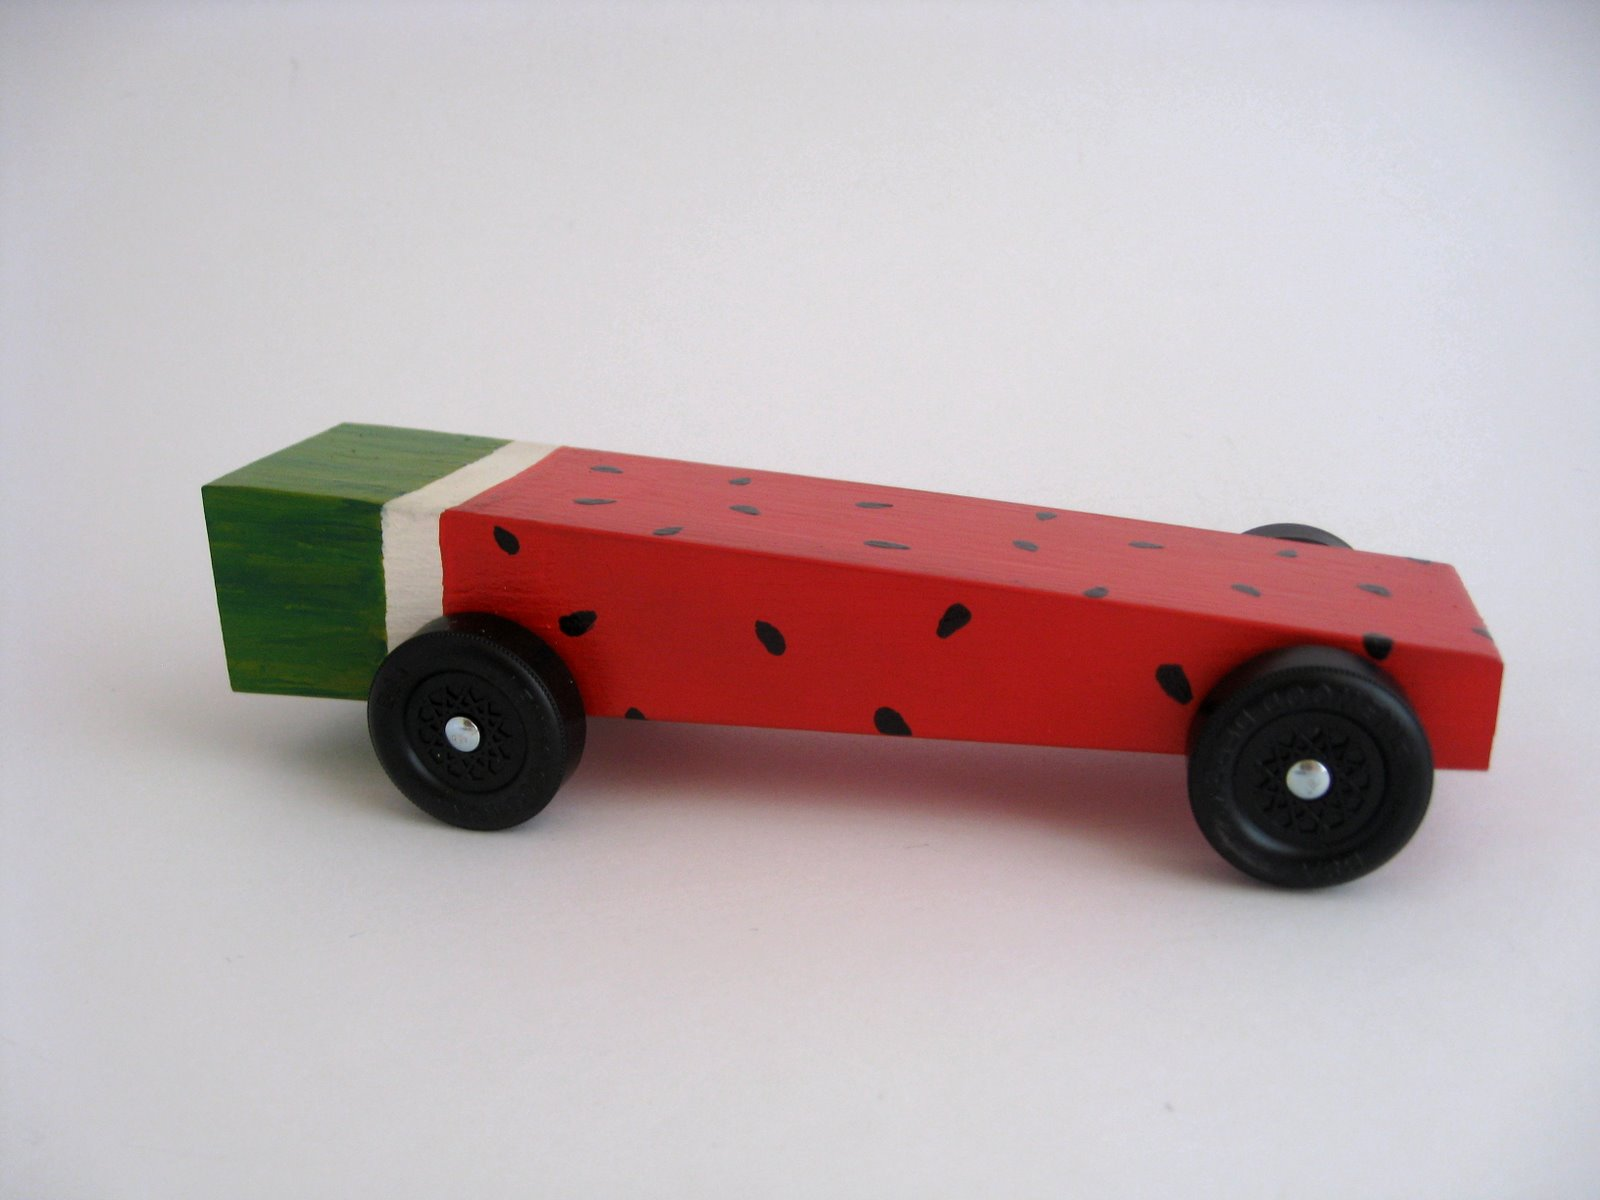 Pinewood Derby Car Design Ideas 1000 ideas about pinewood derby car templates on pinterest pinewood derby cars pinewood derby and derby cars Steve Went For A Much More Impressive Design Using Only The Very Bach S Blog Bach S Pinewood Derby Awesome Car